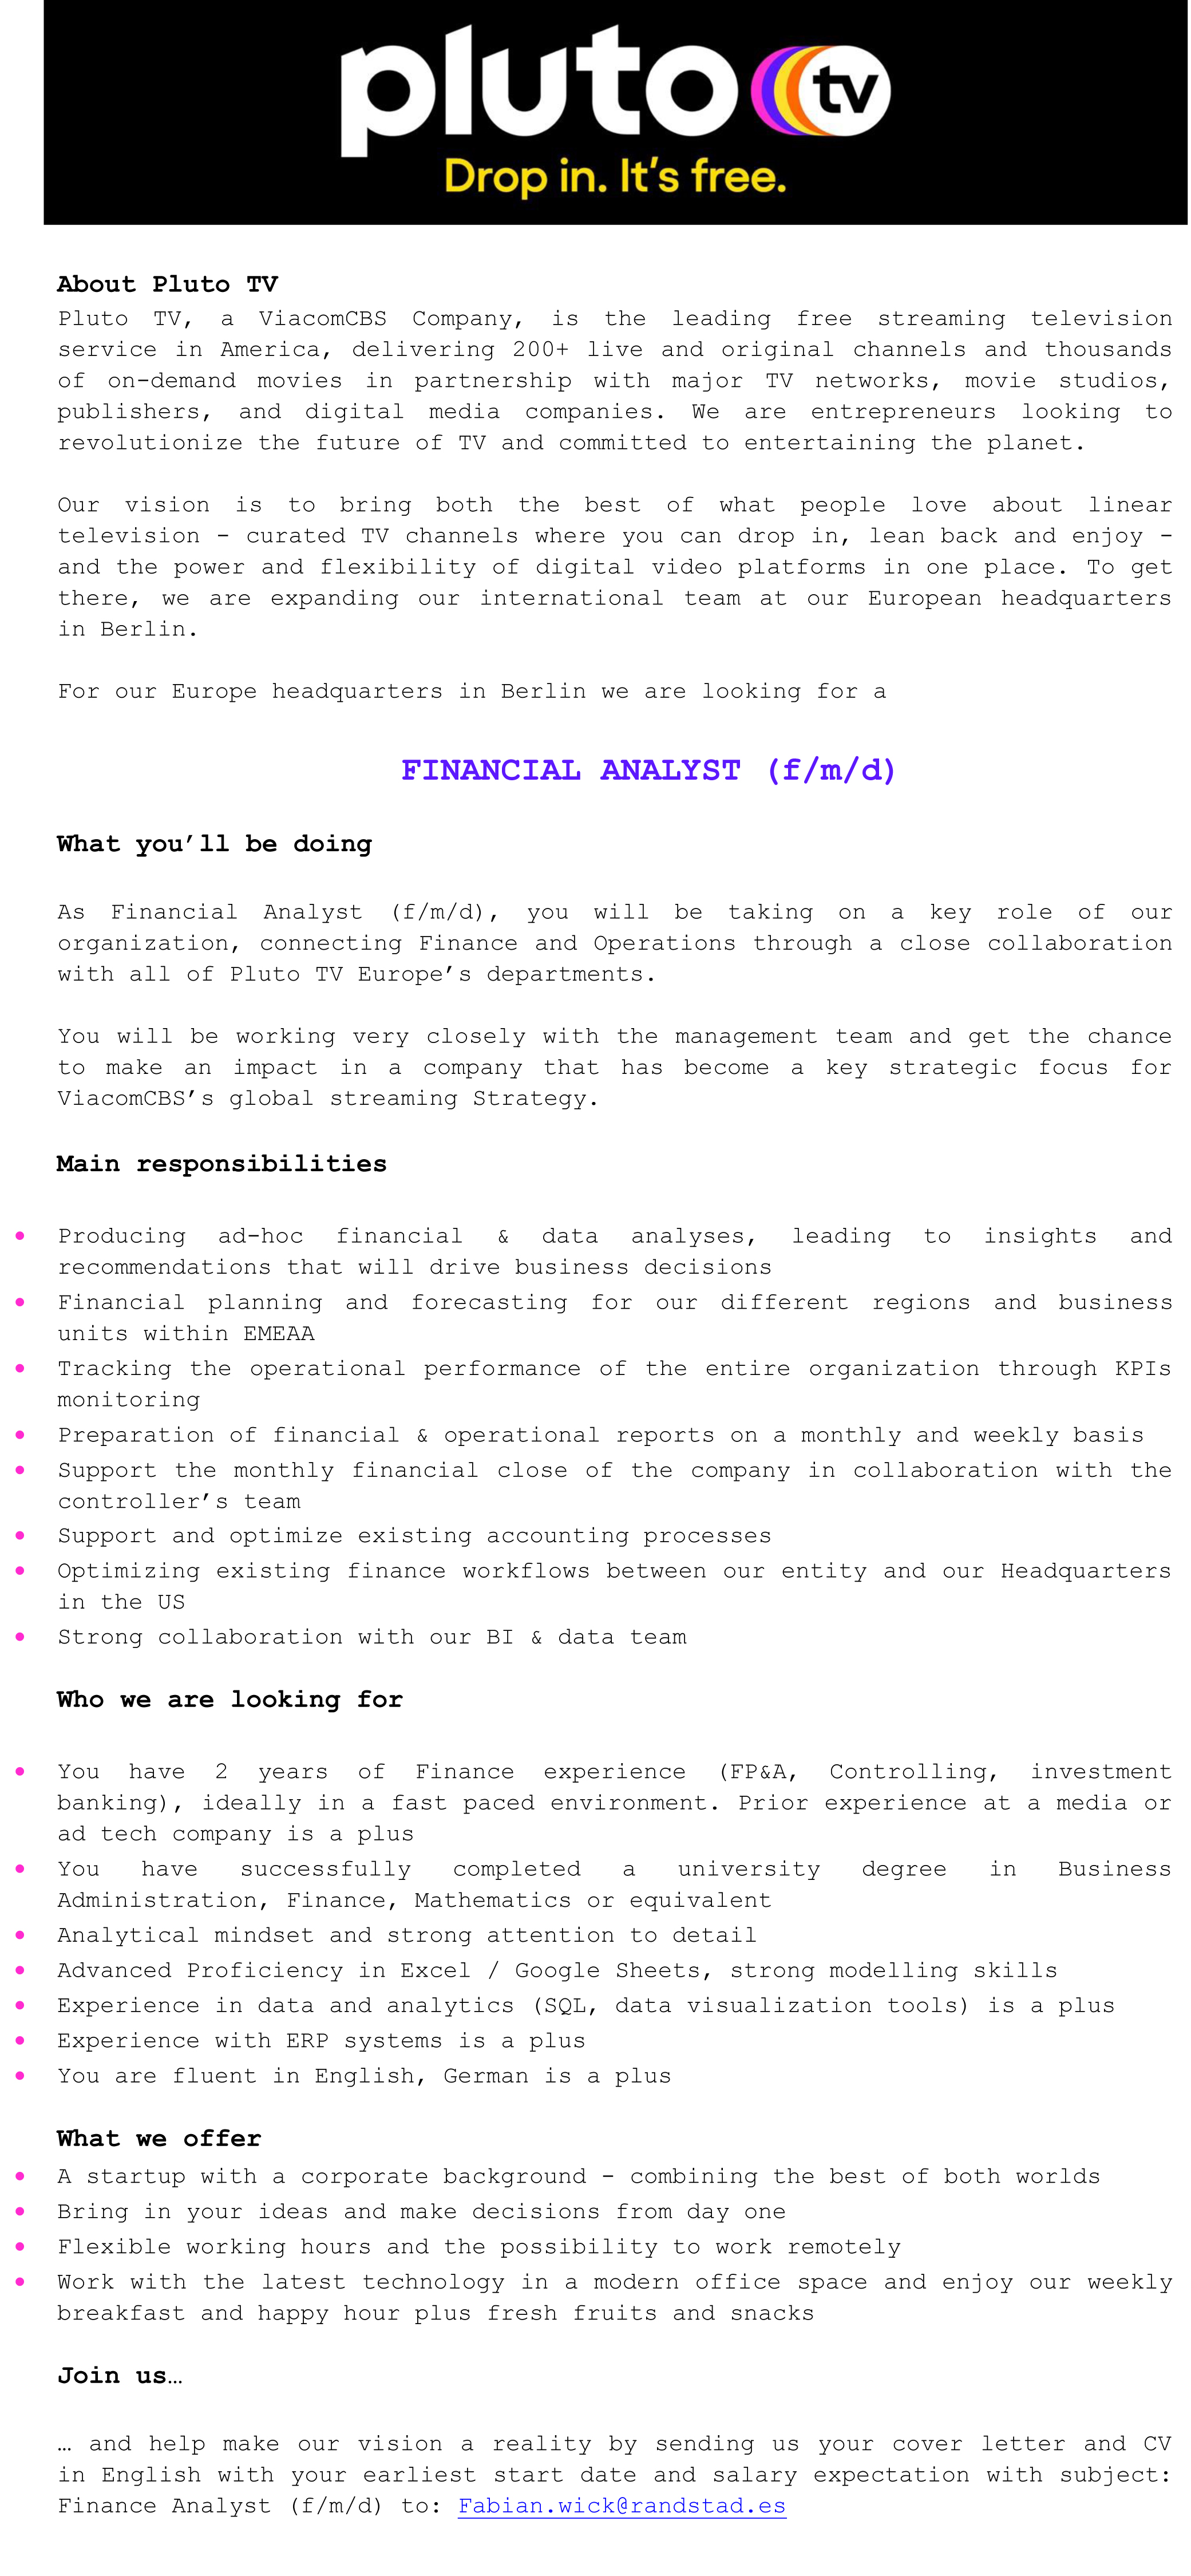 Financial Analyst (f/m/d)